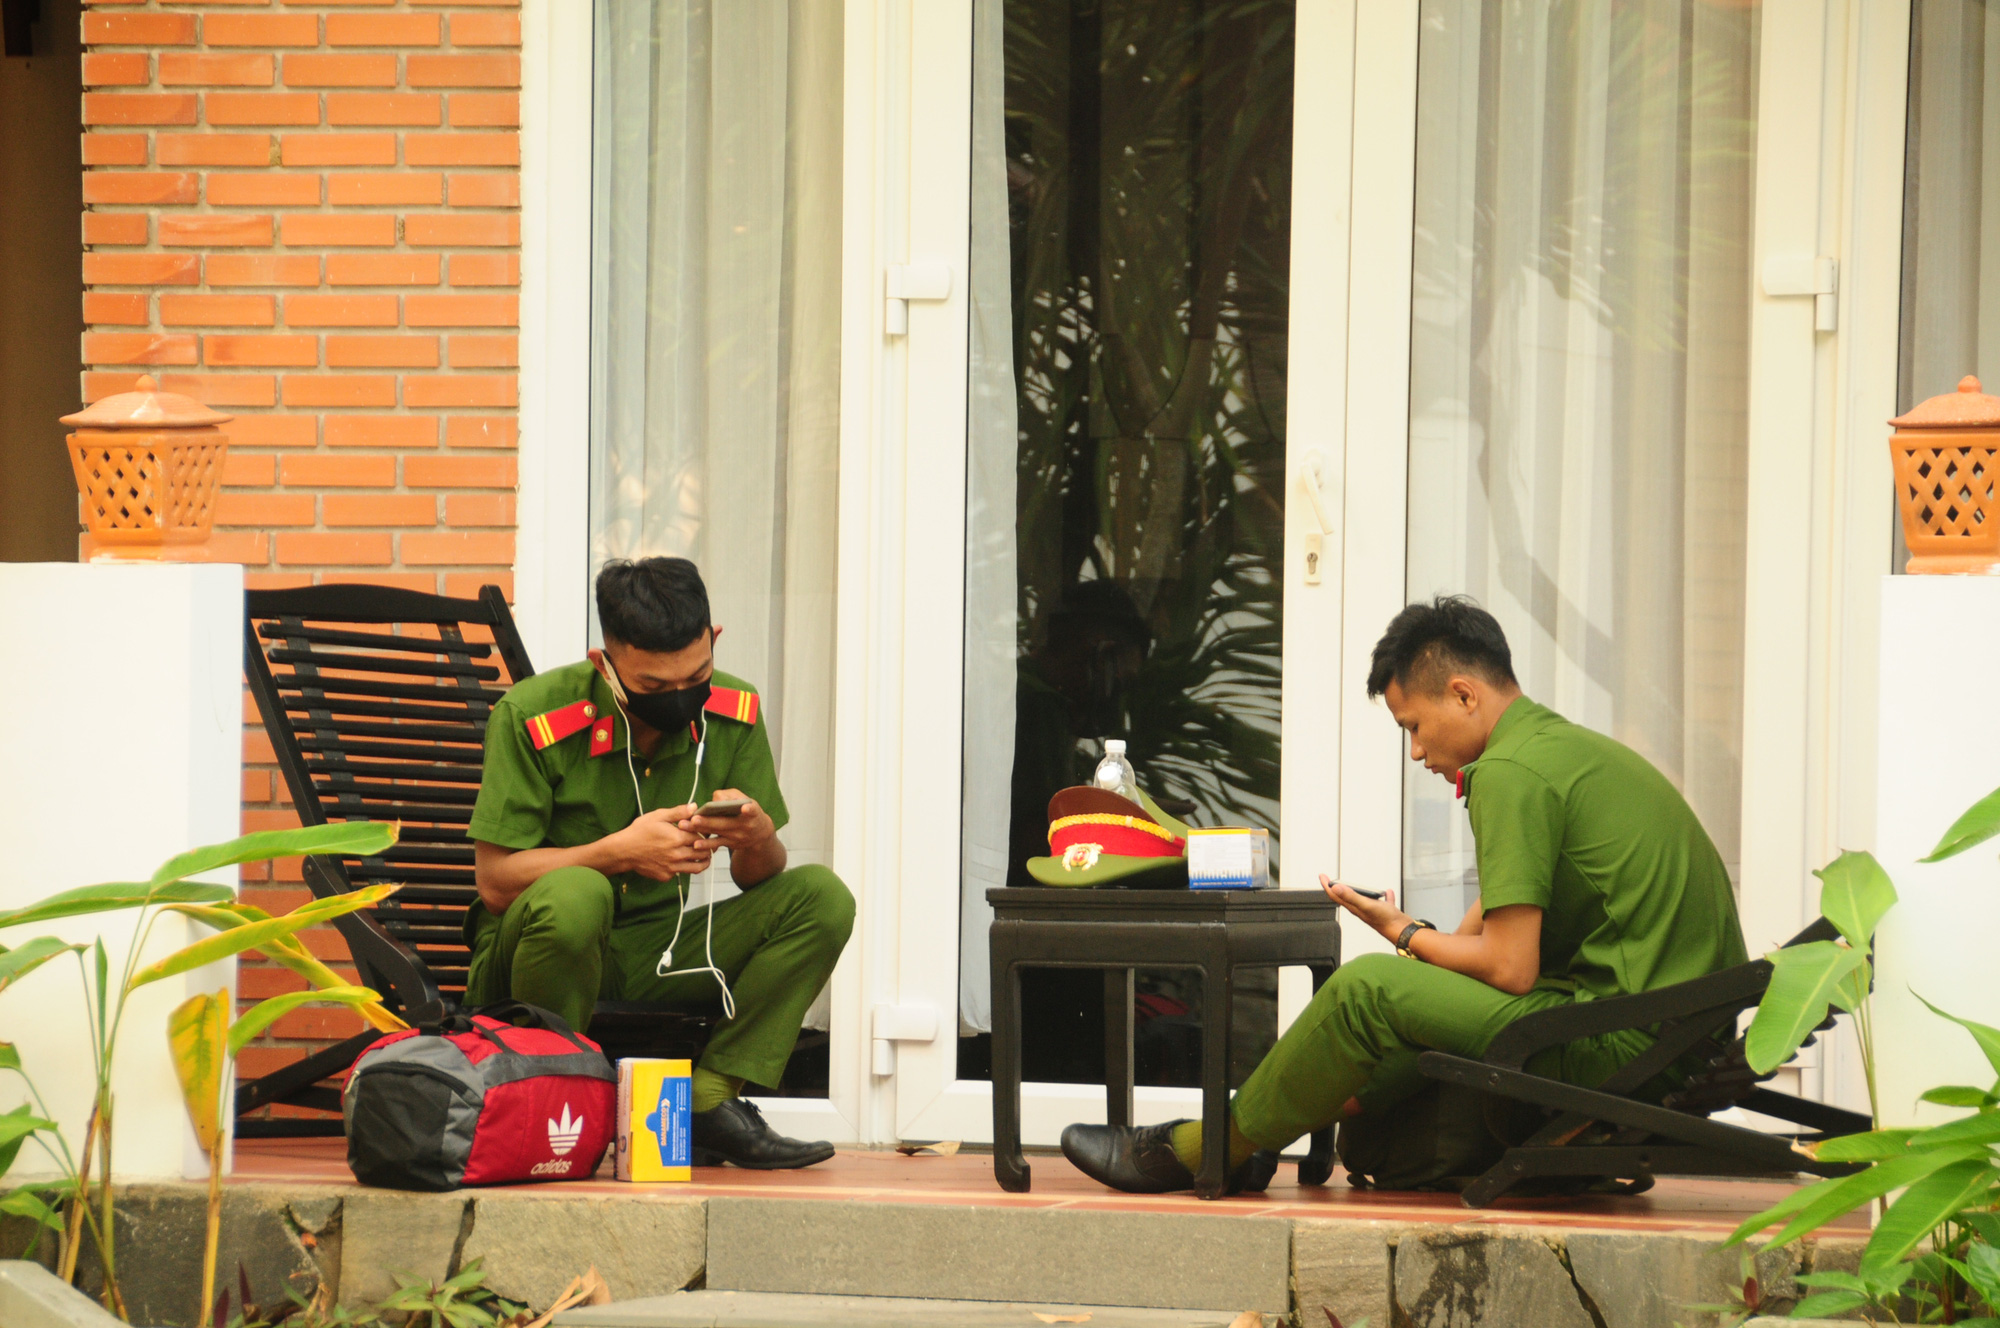 Police officers are on duty at the Hoi An Beach Resort in Quang Nam Province, Vietnam. Photo: B.D. / Tuoi Tre